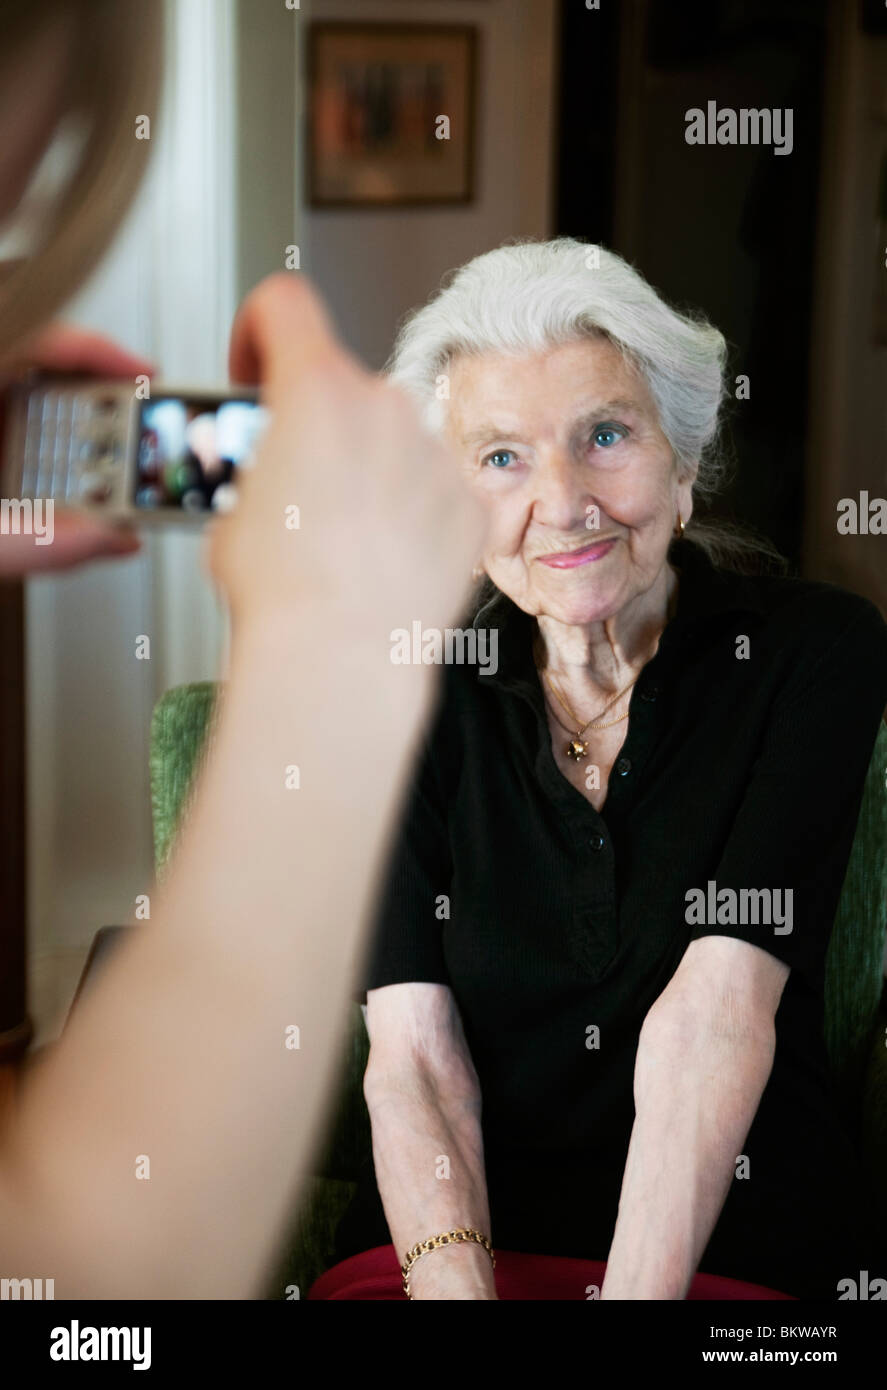 Young woman taking photo of an elderly lady with camera phone - Stock Image